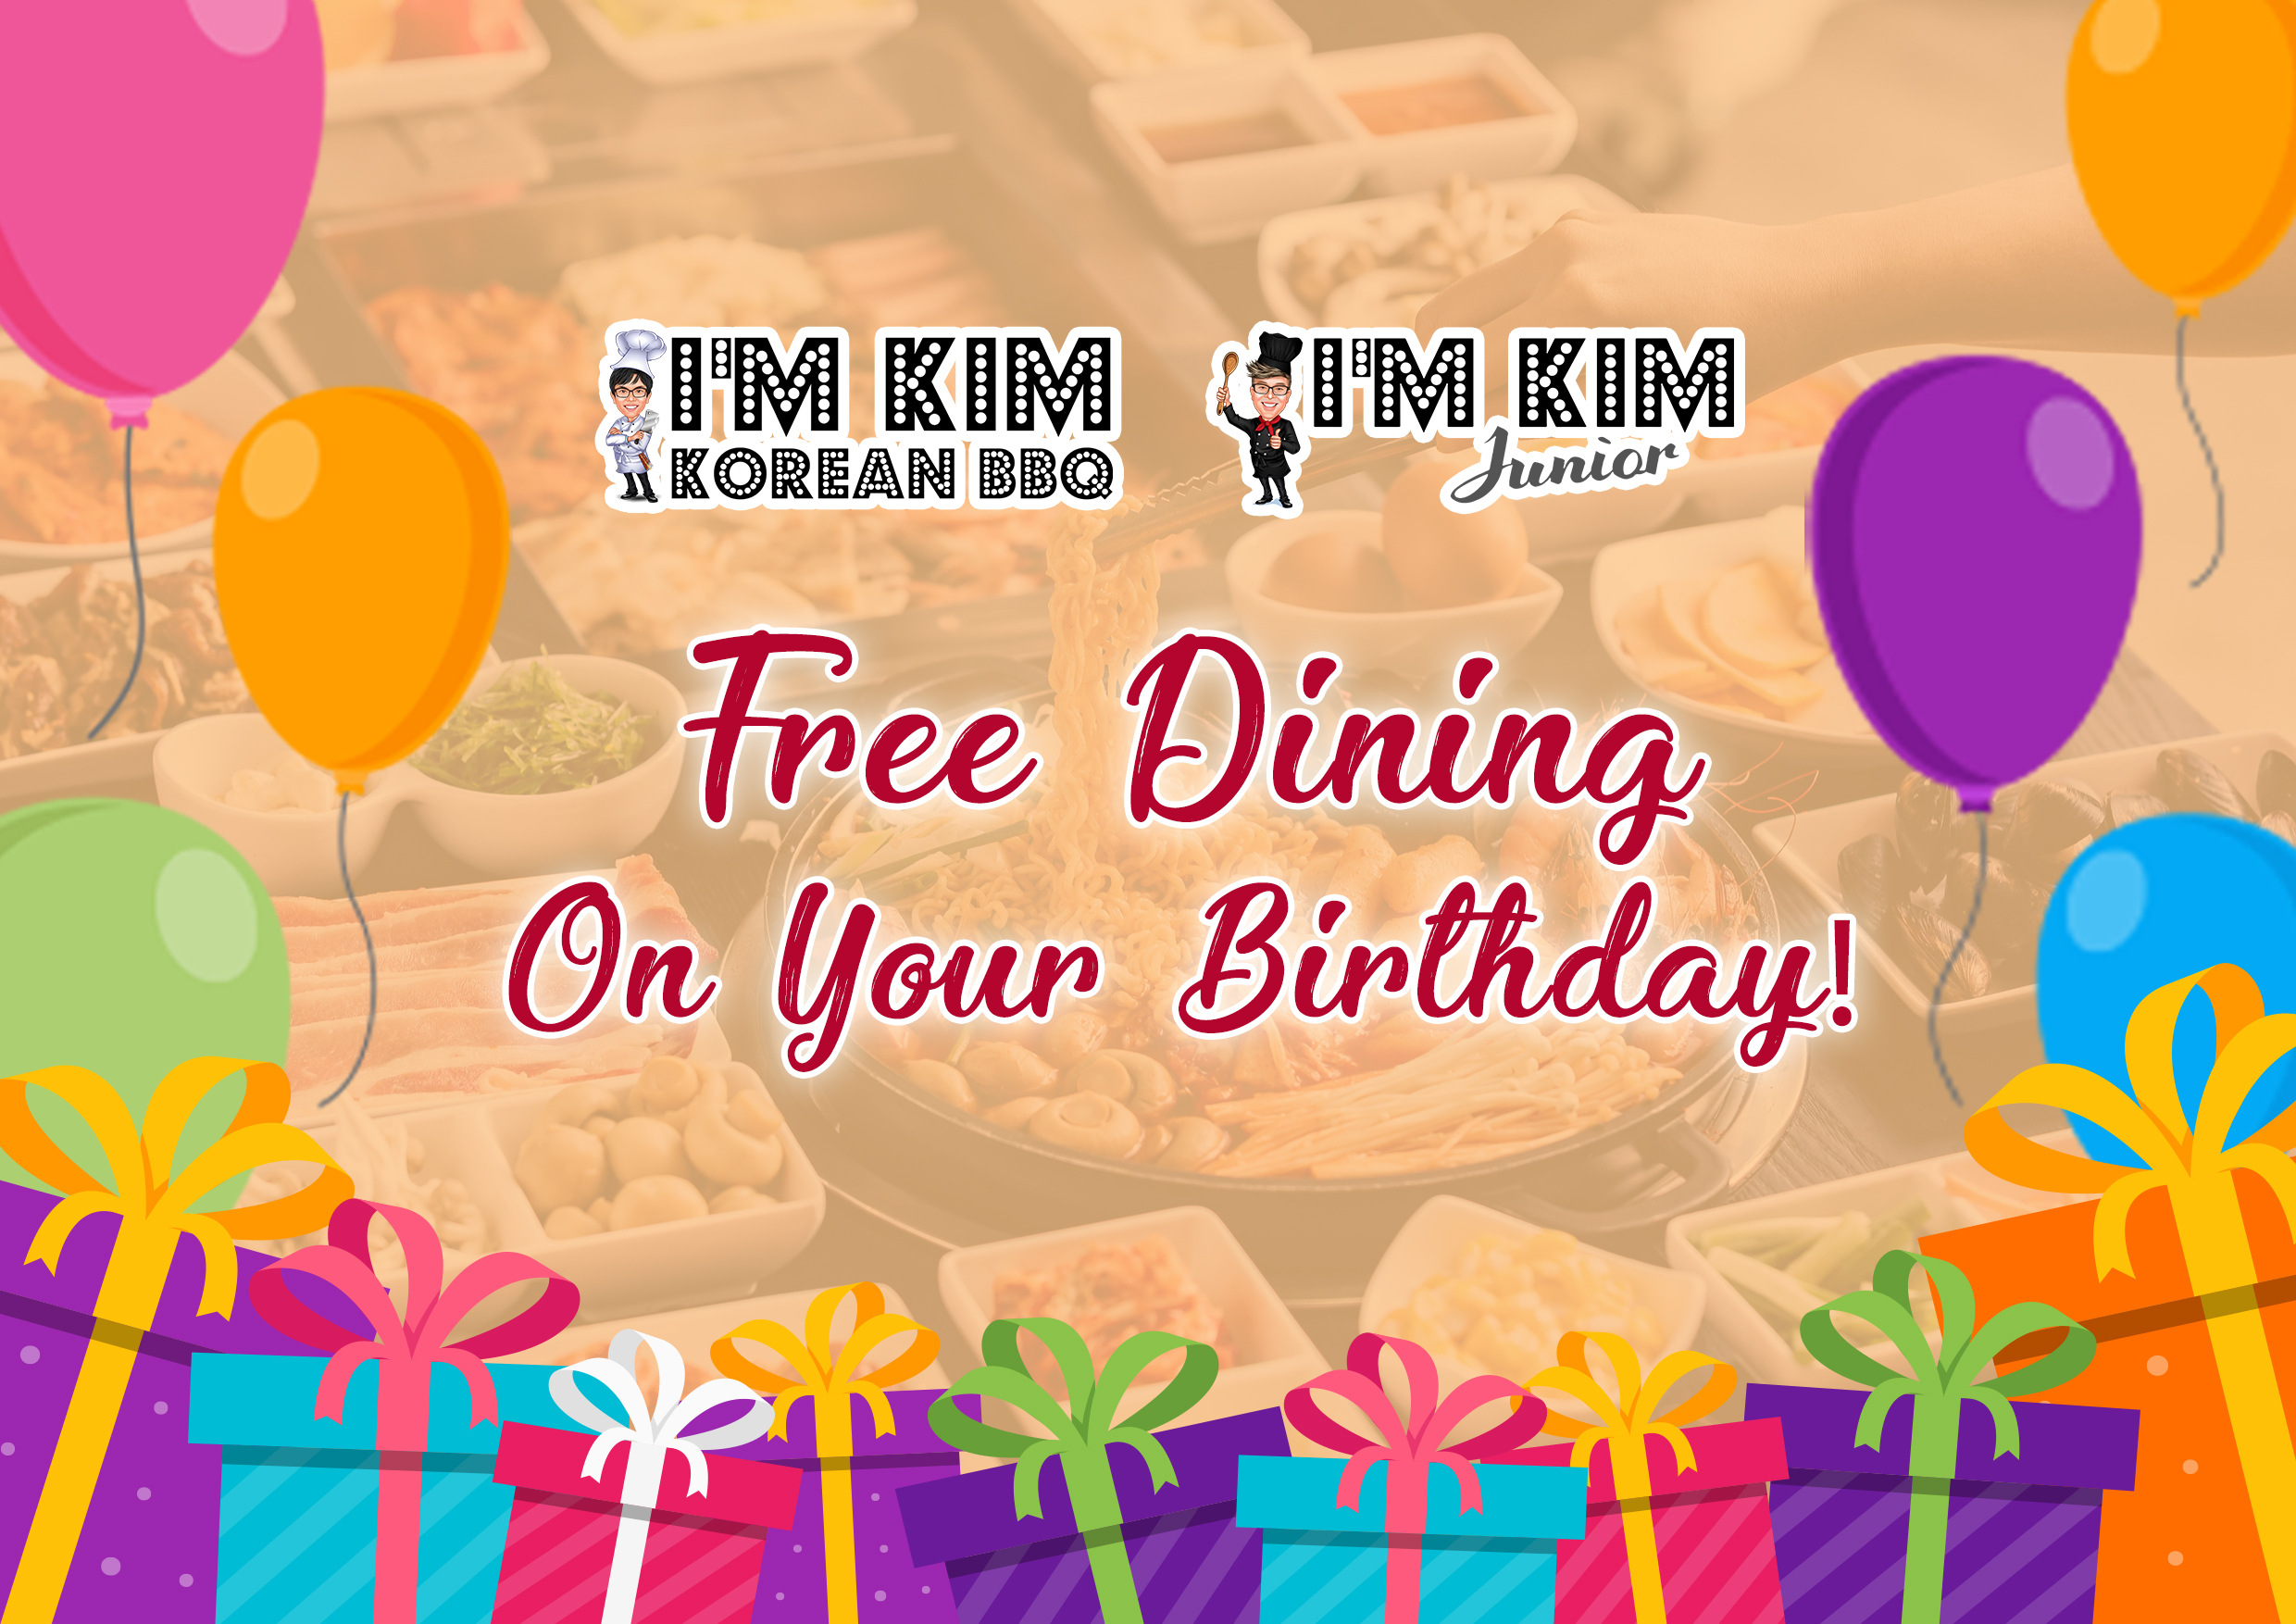 I'm Kim KBBQ & I'm Kim Junior - Free Dining on your Birthday (July 2019) - Website